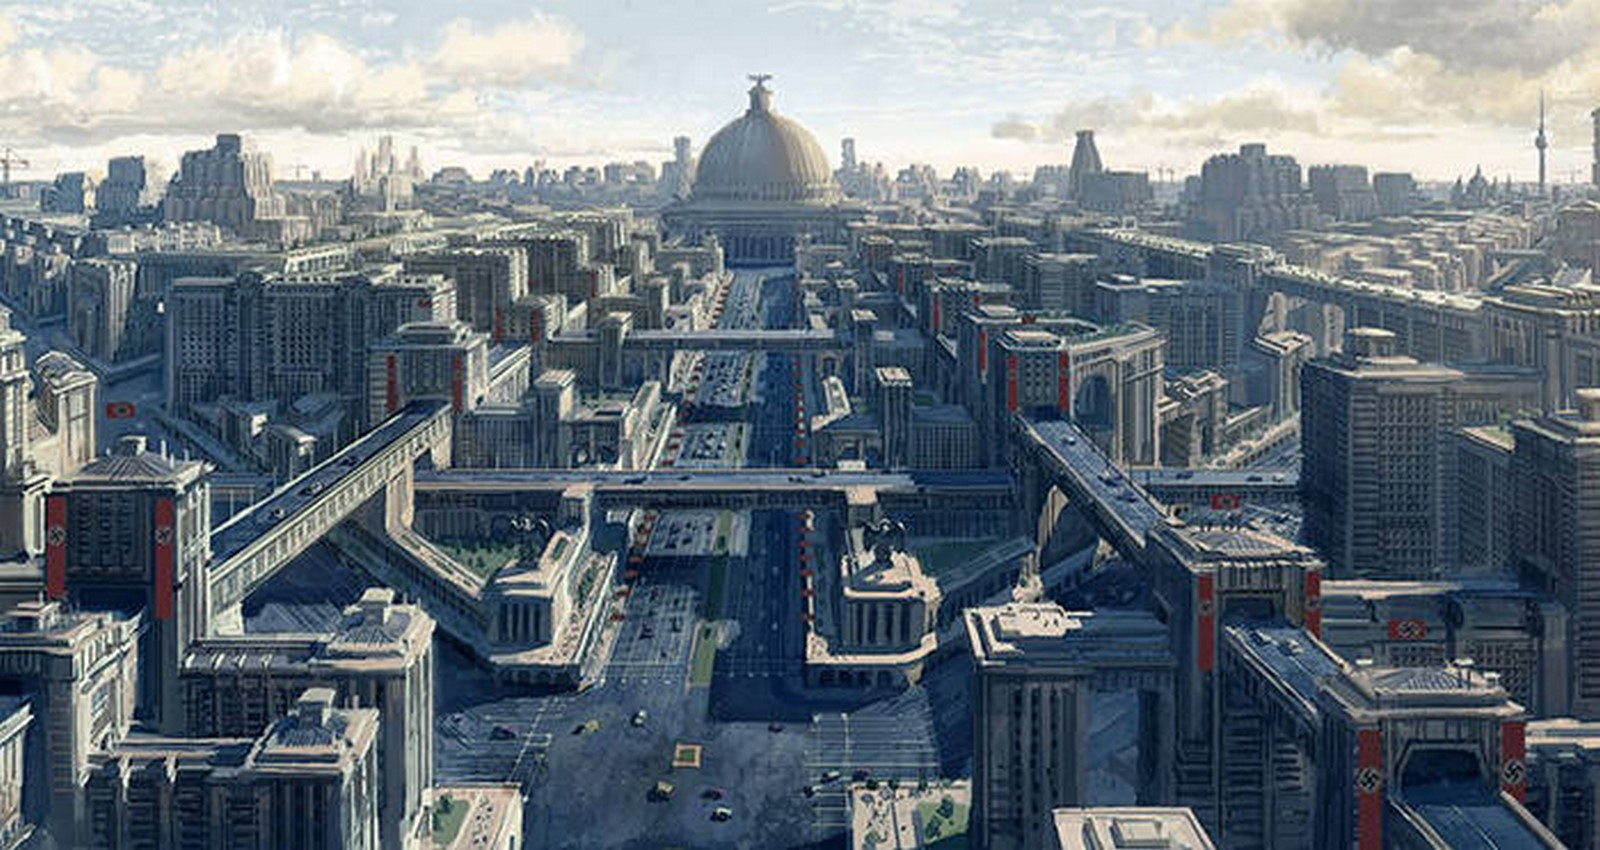 Germania- Hitler's architectural vision for a capital of the world - Sheet1